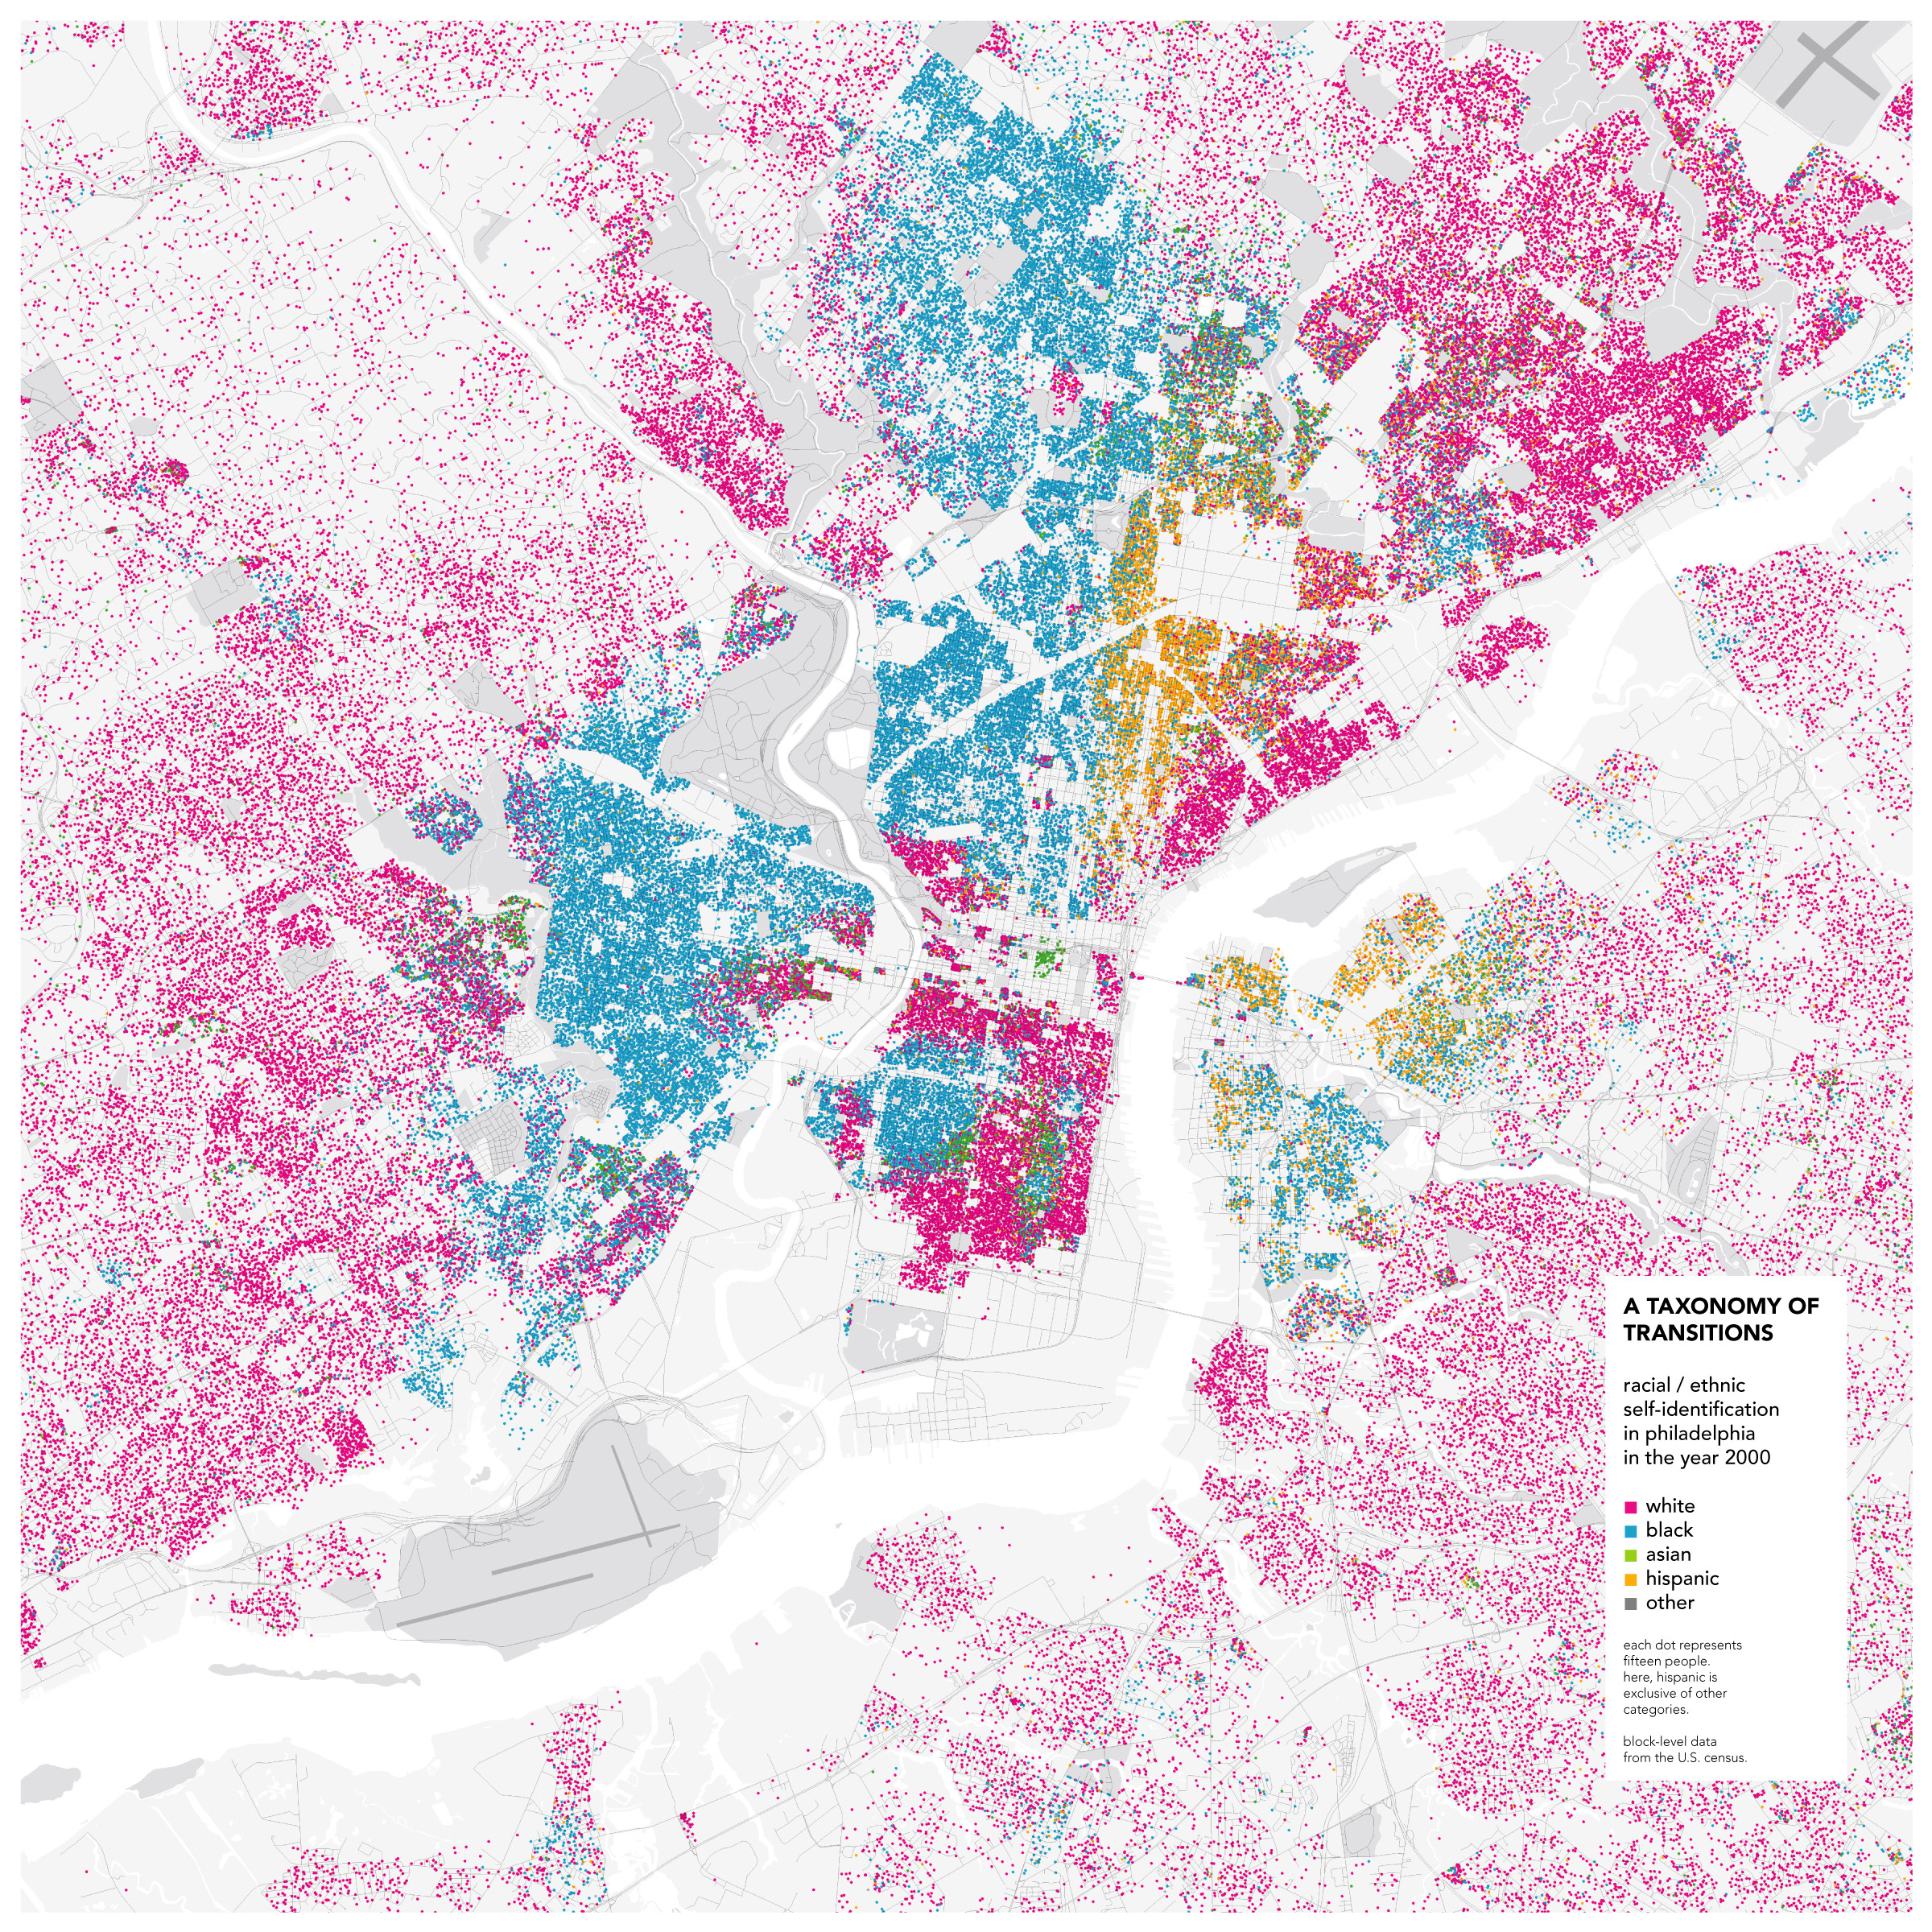 Philadelphia Race Map Diverse suburbs of Philadelphia? (Norristown, Bensalem, Upper